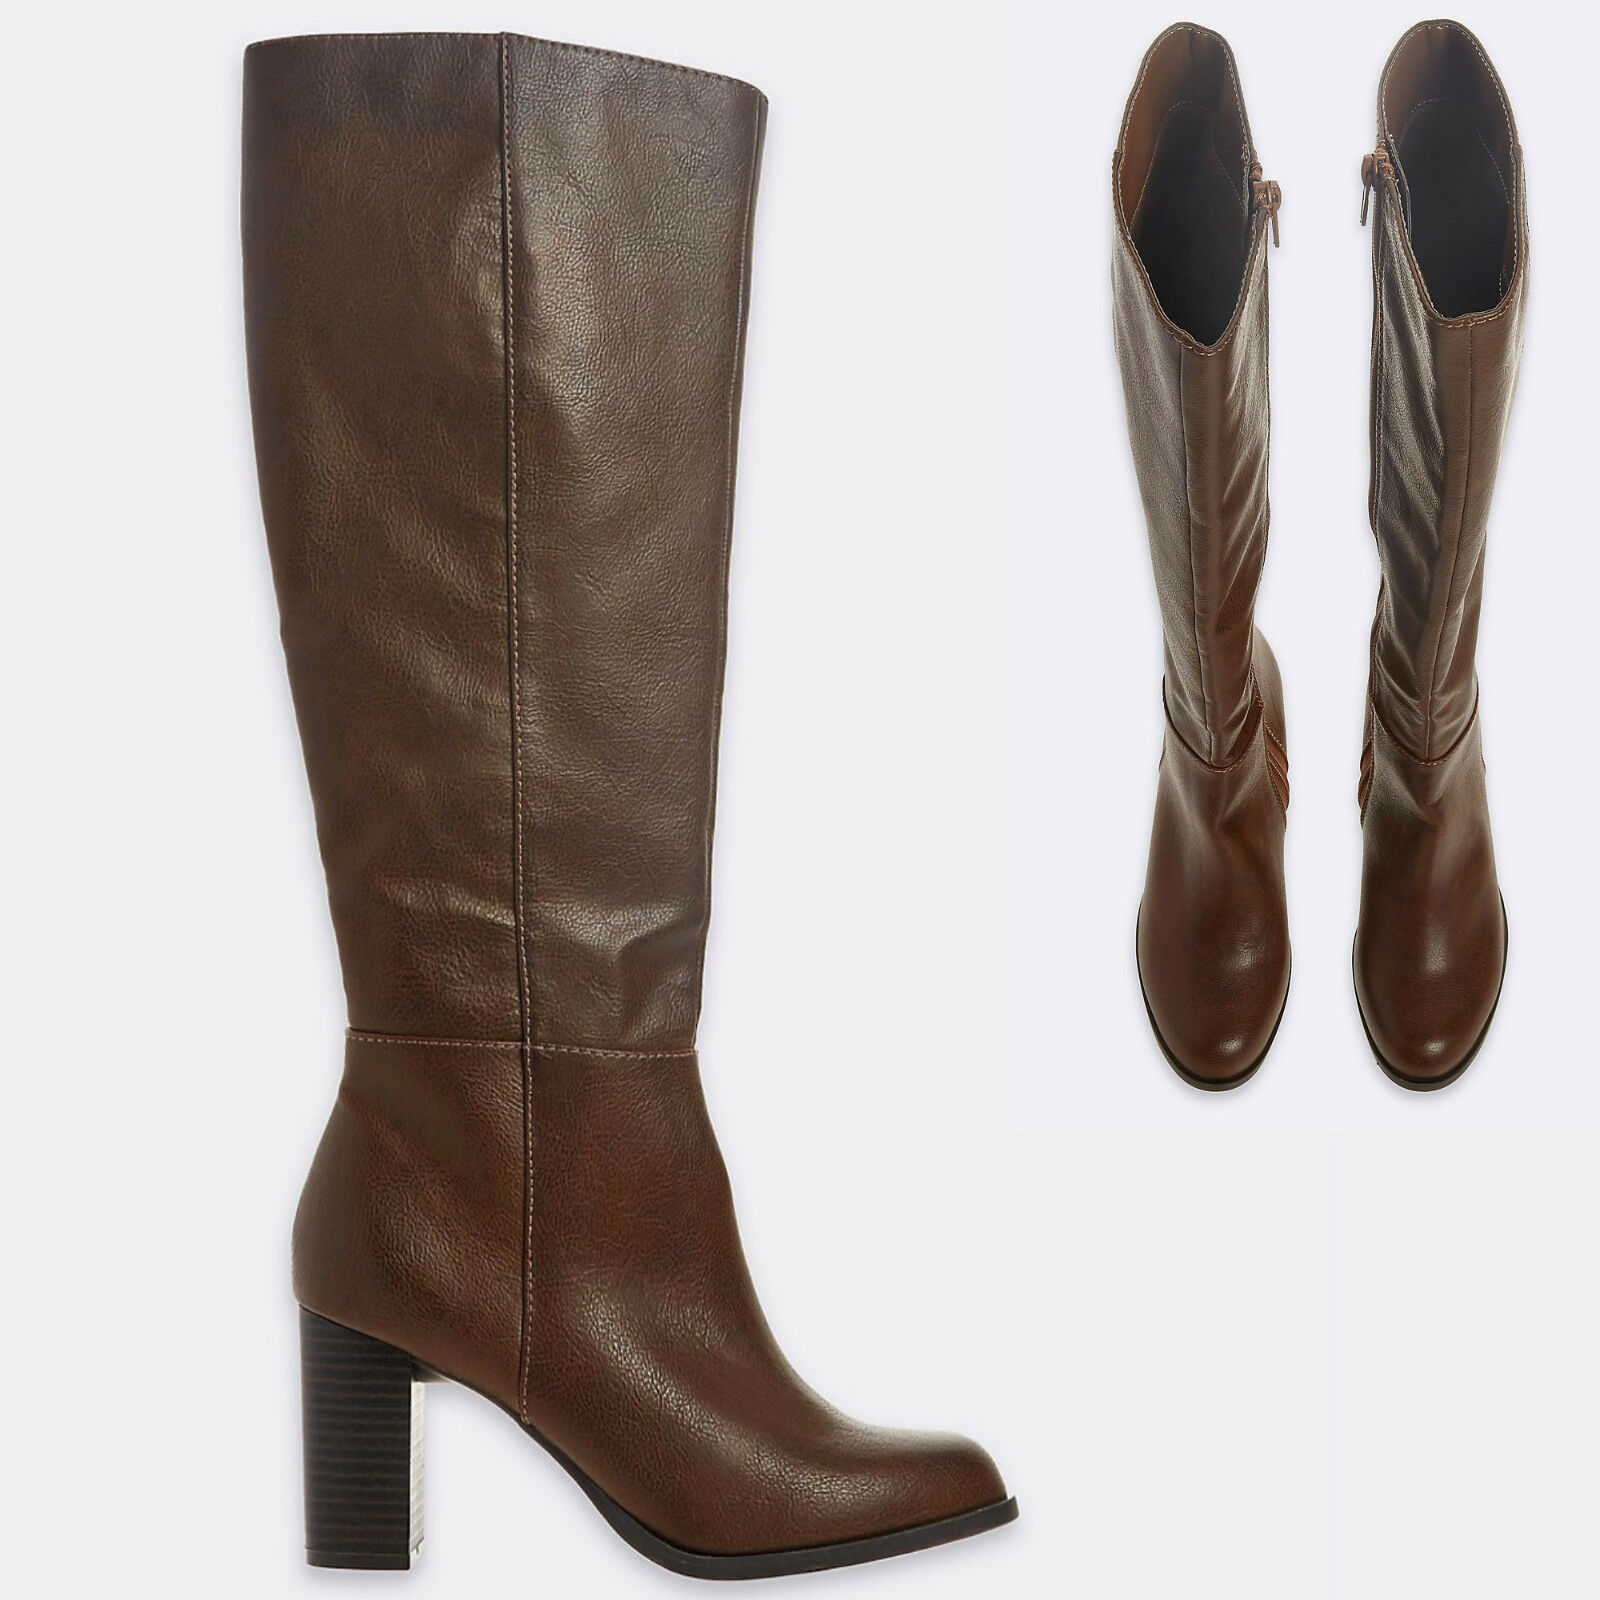 M&S Faux Leather HIGH Heel LONG BOOTS with Insolia  Size 7  DARK TAN